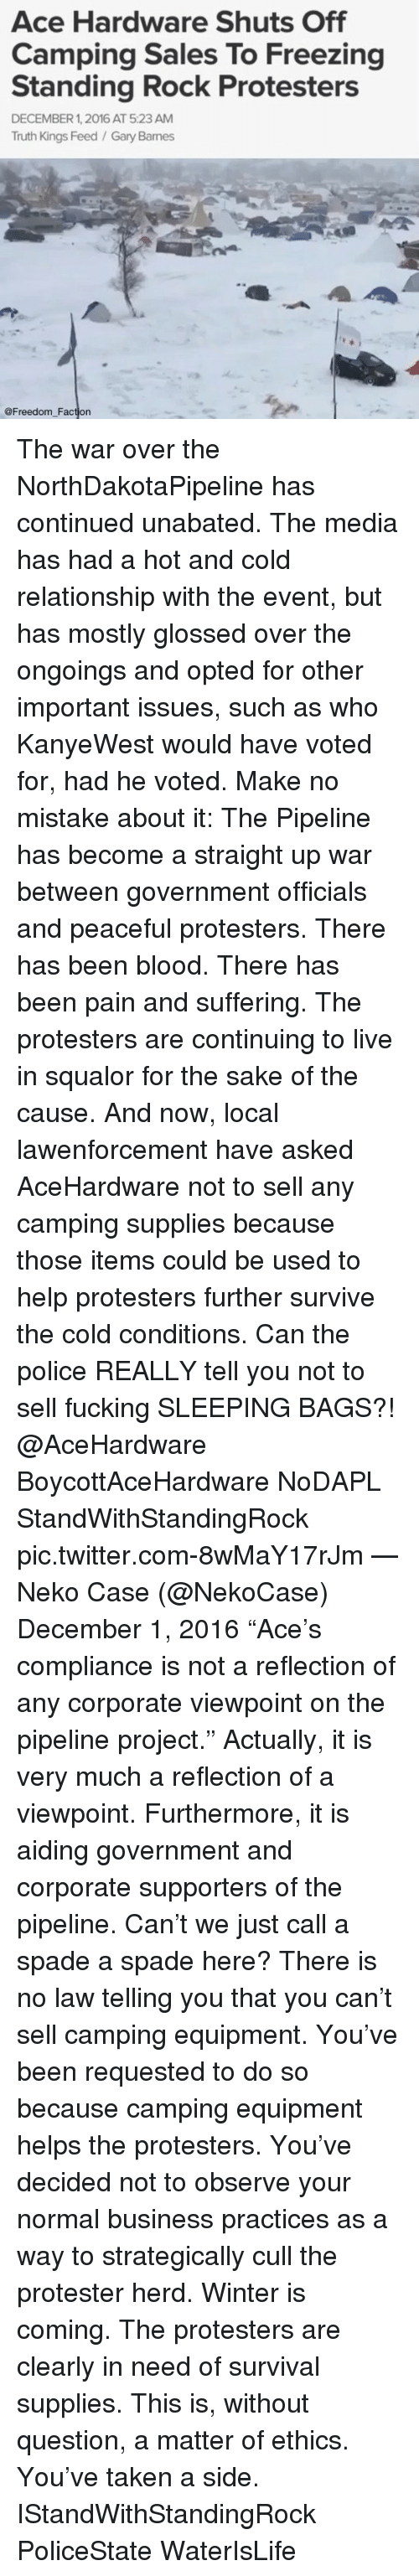 """Bloods, Memes, and Protest: Ace Hardware Shuts Off  Camping Sales To Freezing  Standing Rock Protesters  DECEMBER 1, 2016 AT 5:23 AM  Truth Kings Feed Gary Barnes  @Freedom Faction The war over the NorthDakotaPipeline has continued unabated. The media has had a hot and cold relationship with the event, but has mostly glossed over the ongoings and opted for other important issues, such as who KanyeWest would have voted for, had he voted. Make no mistake about it: The Pipeline has become a straight up war between government officials and peaceful protesters. There has been blood. There has been pain and suffering. The protesters are continuing to live in squalor for the sake of the cause. And now, local lawenforcement have asked AceHardware not to sell any camping supplies because those items could be used to help protesters further survive the cold conditions. Can the police REALLY tell you not to sell fucking SLEEPING BAGS?! @AceHardware BoycottAceHardware NoDAPL StandWithStandingRock pic.twitter.com-8wMaY17rJm — Neko Case (@NekoCase) December 1, 2016 """"Ace's compliance is not a reflection of any corporate viewpoint on the pipeline project."""" Actually, it is very much a reflection of a viewpoint. Furthermore, it is aiding government and corporate supporters of the pipeline. Can't we just call a spade a spade here? There is no law telling you that you can't sell camping equipment. You've been requested to do so because camping equipment helps the protesters. You've decided not to observe your normal business practices as a way to strategically cull the protester herd. Winter is coming. The protesters are clearly in need of survival supplies. This is, without question, a matter of ethics. You've taken a side. IStandWithStandingRock PoliceState WaterIsLife"""